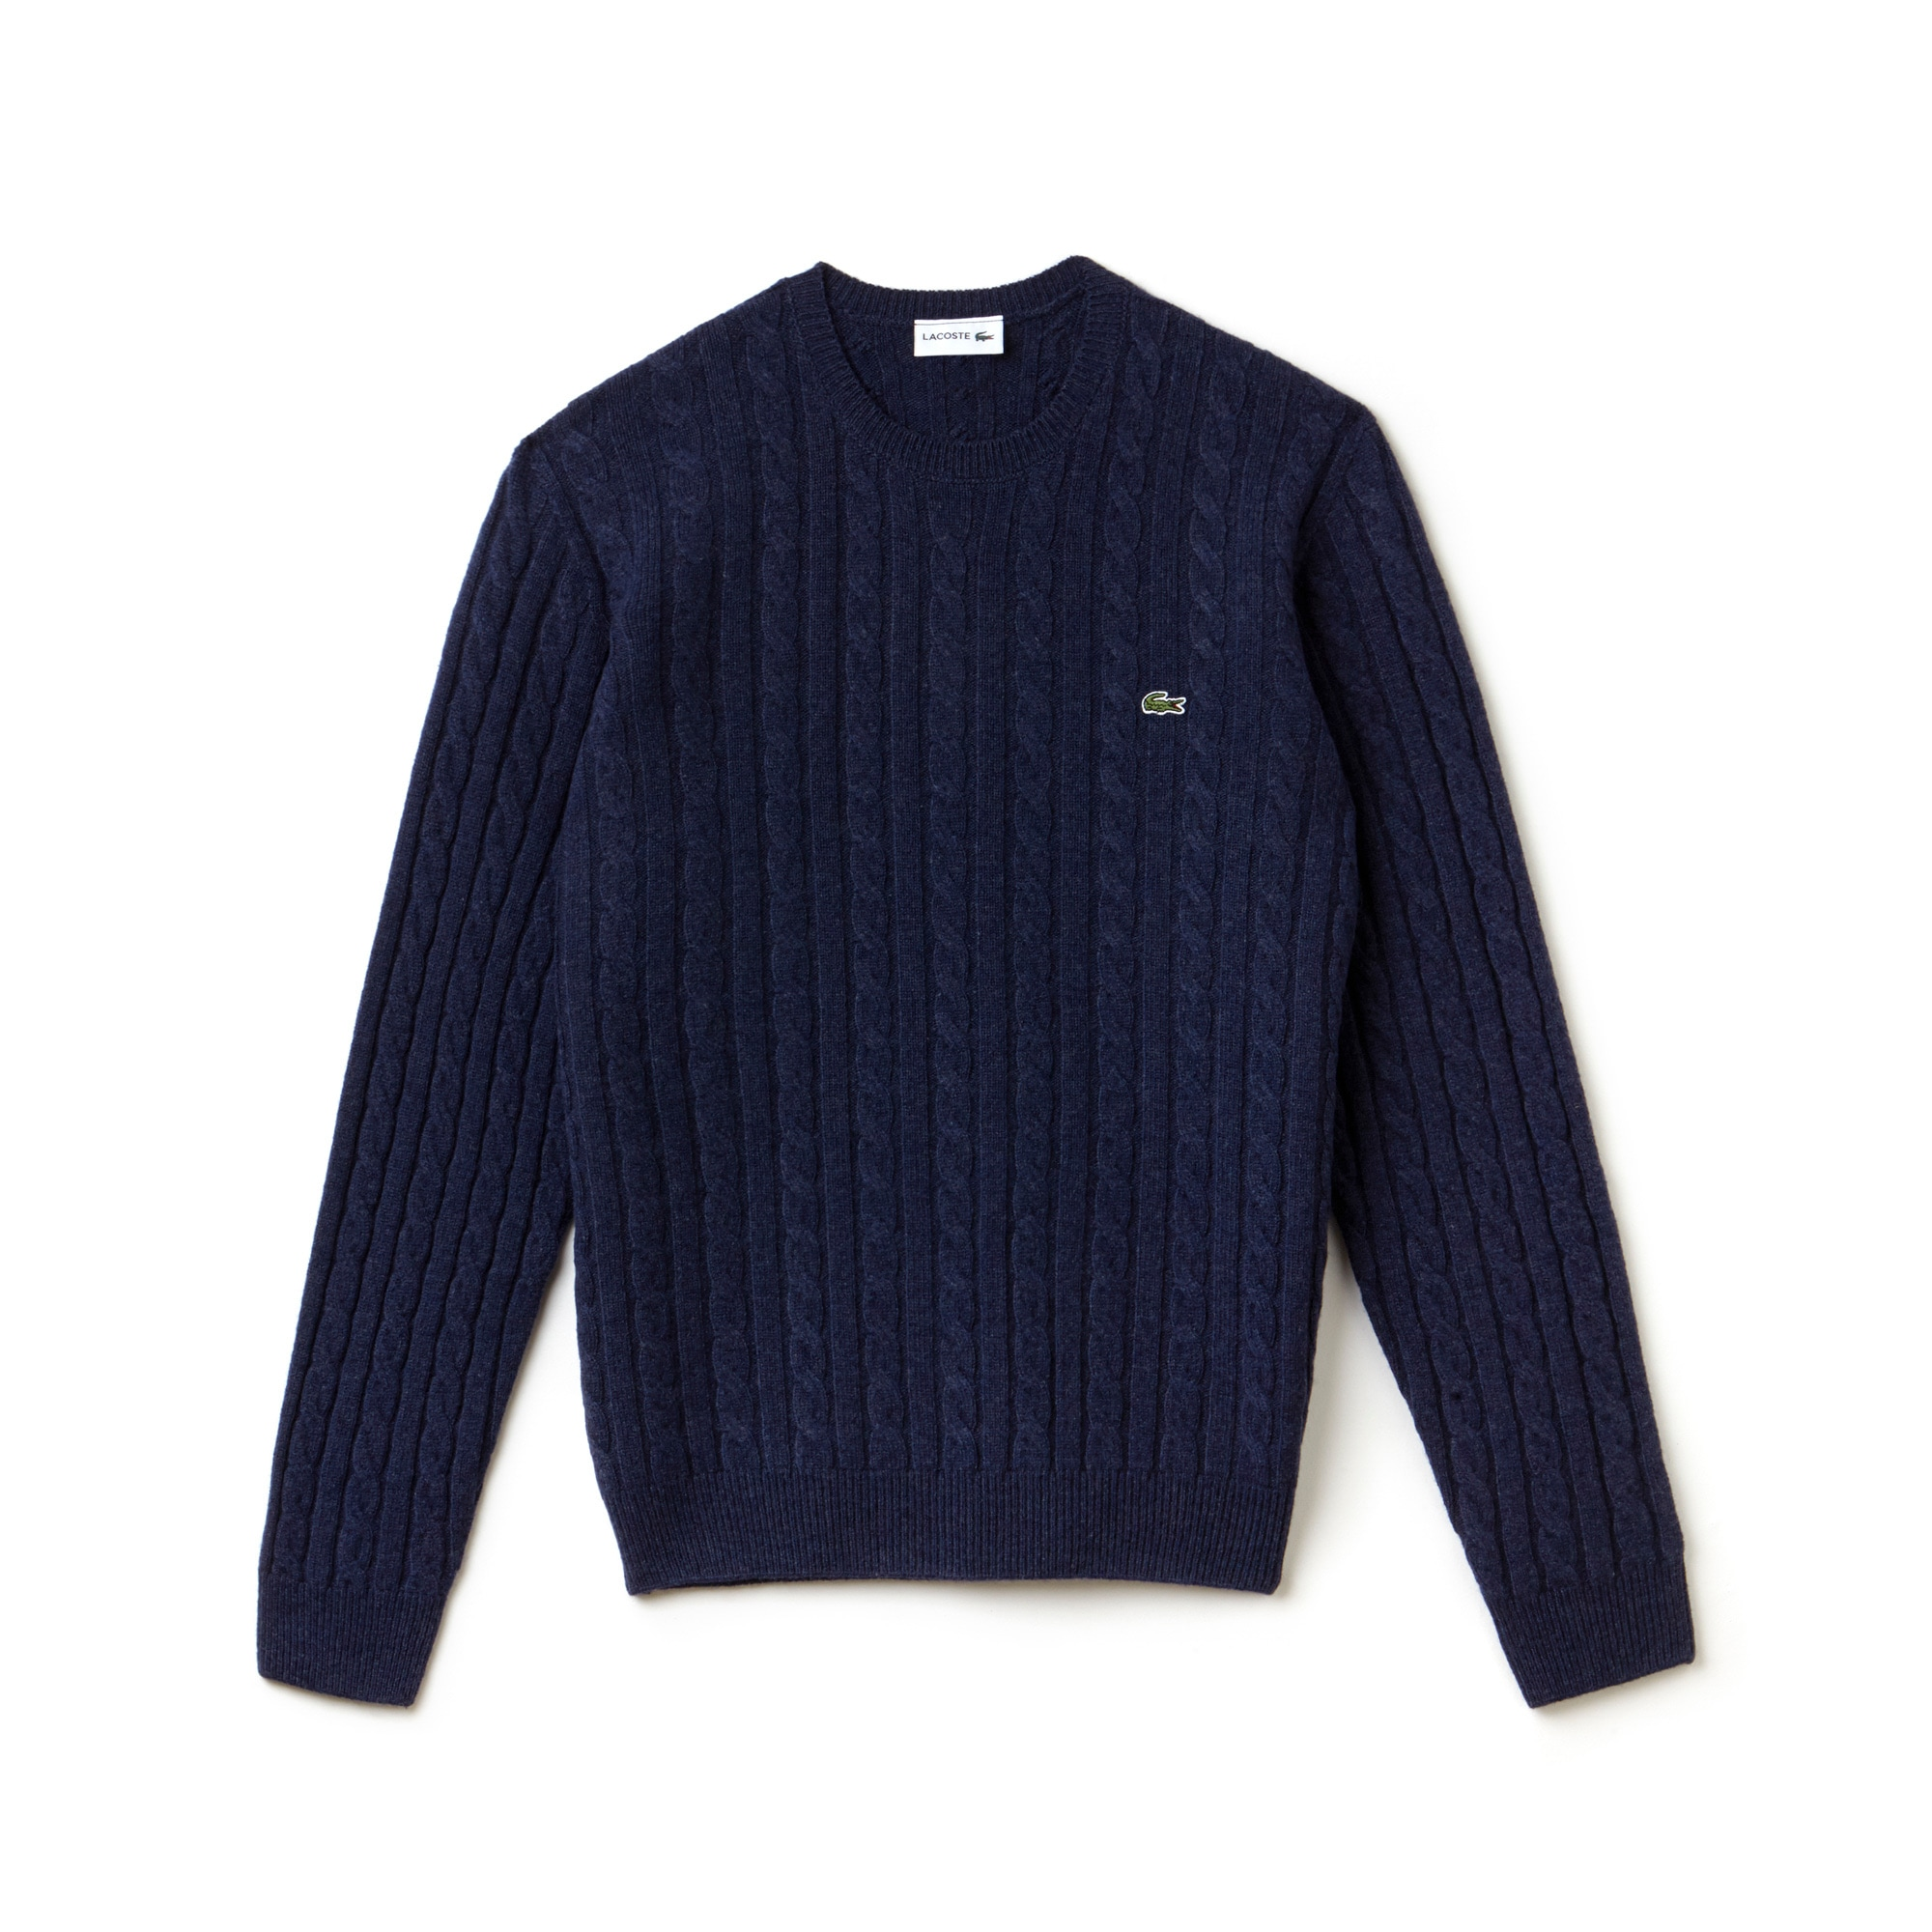 Men's Crew Neck Wool Cable Knit Effect Sweater